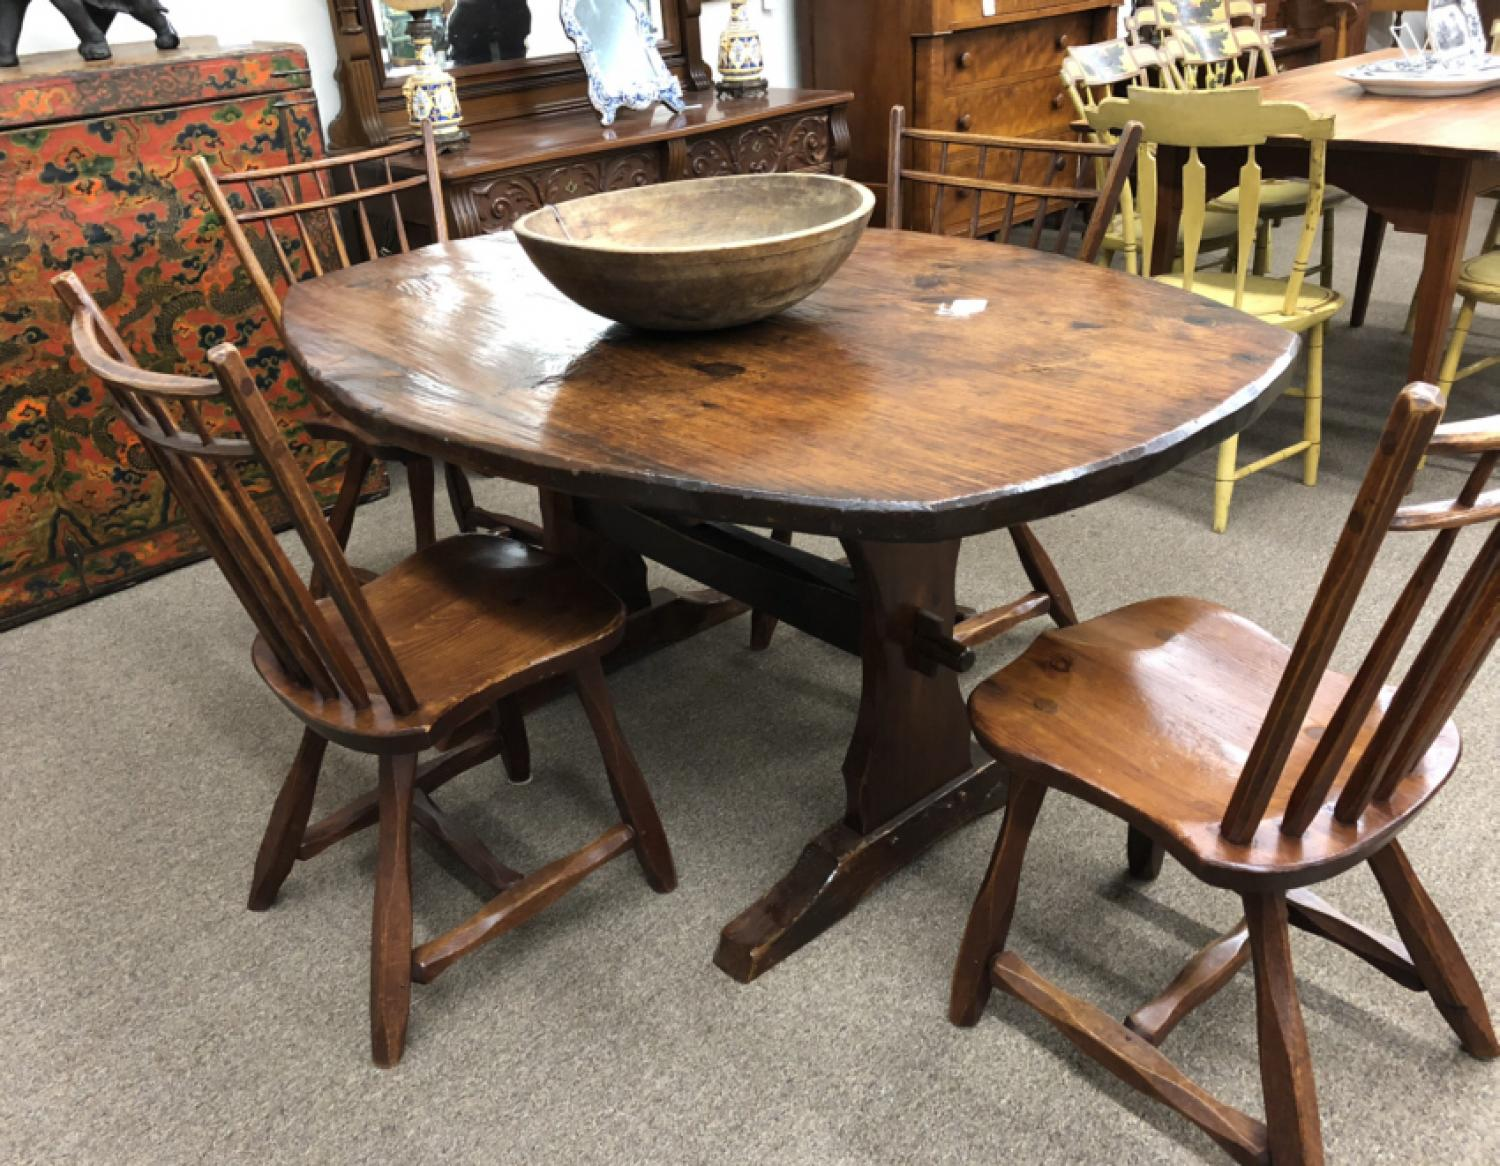 Vintage Adirondack pine trestle table and chairs